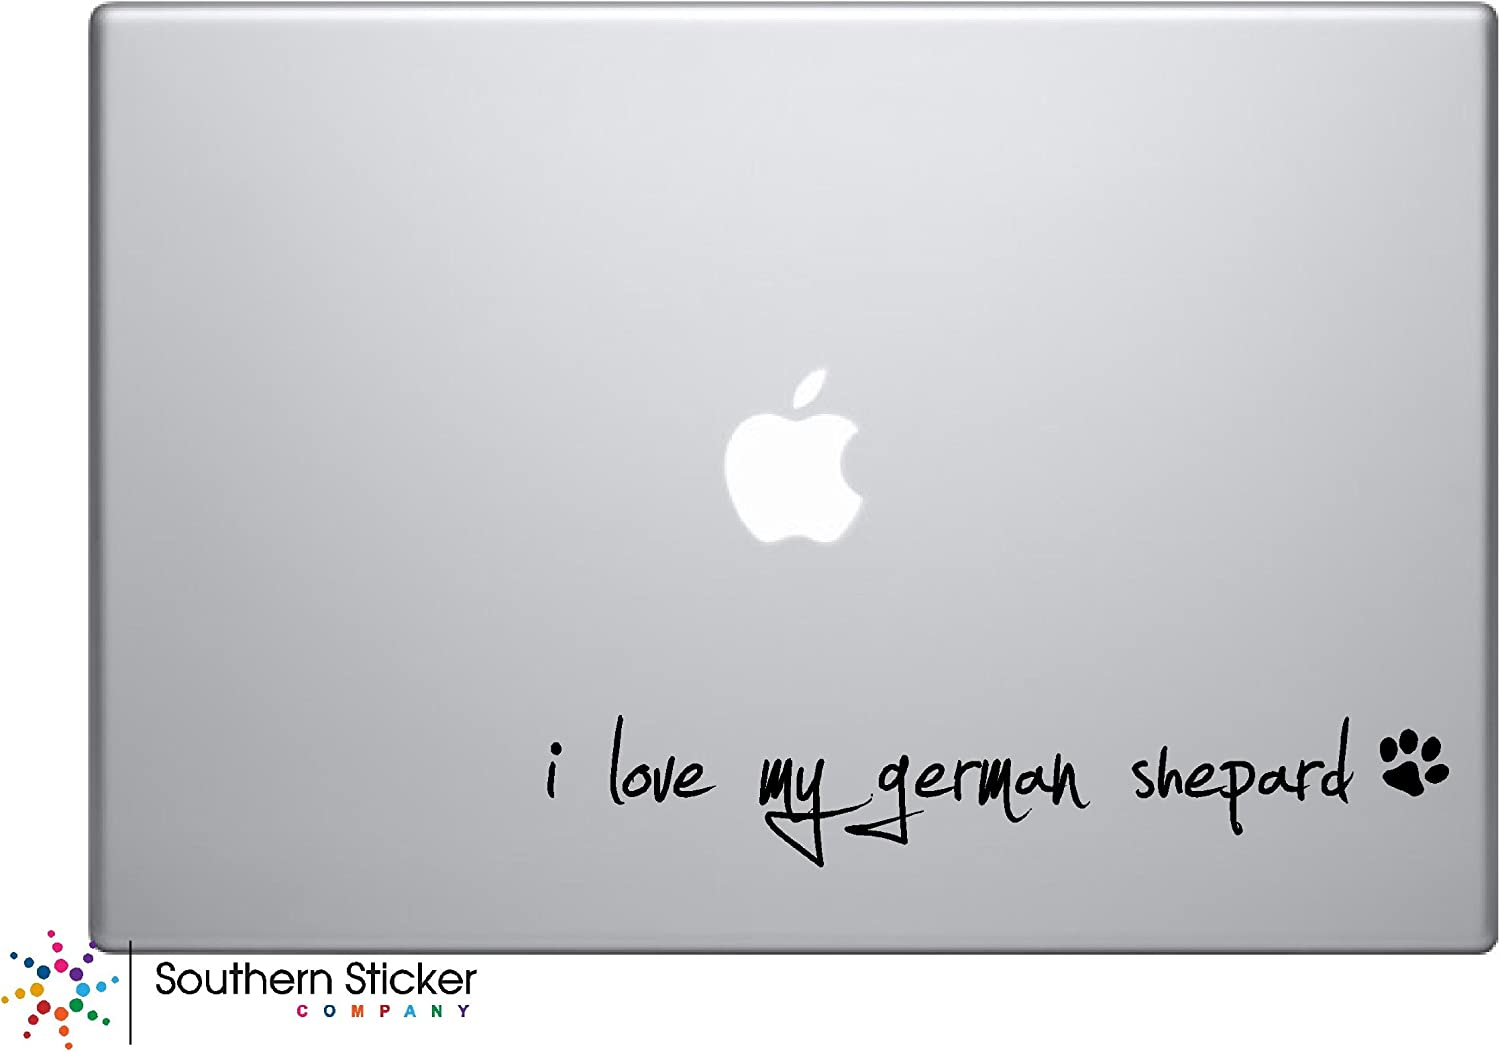 I Love My German Shepard Dog Puppy Vinyl Car Sticker Symbol Silhouette Keypad Track Pad Decal Laptop Skin Ipad Macbook Window Truck Motorcycle